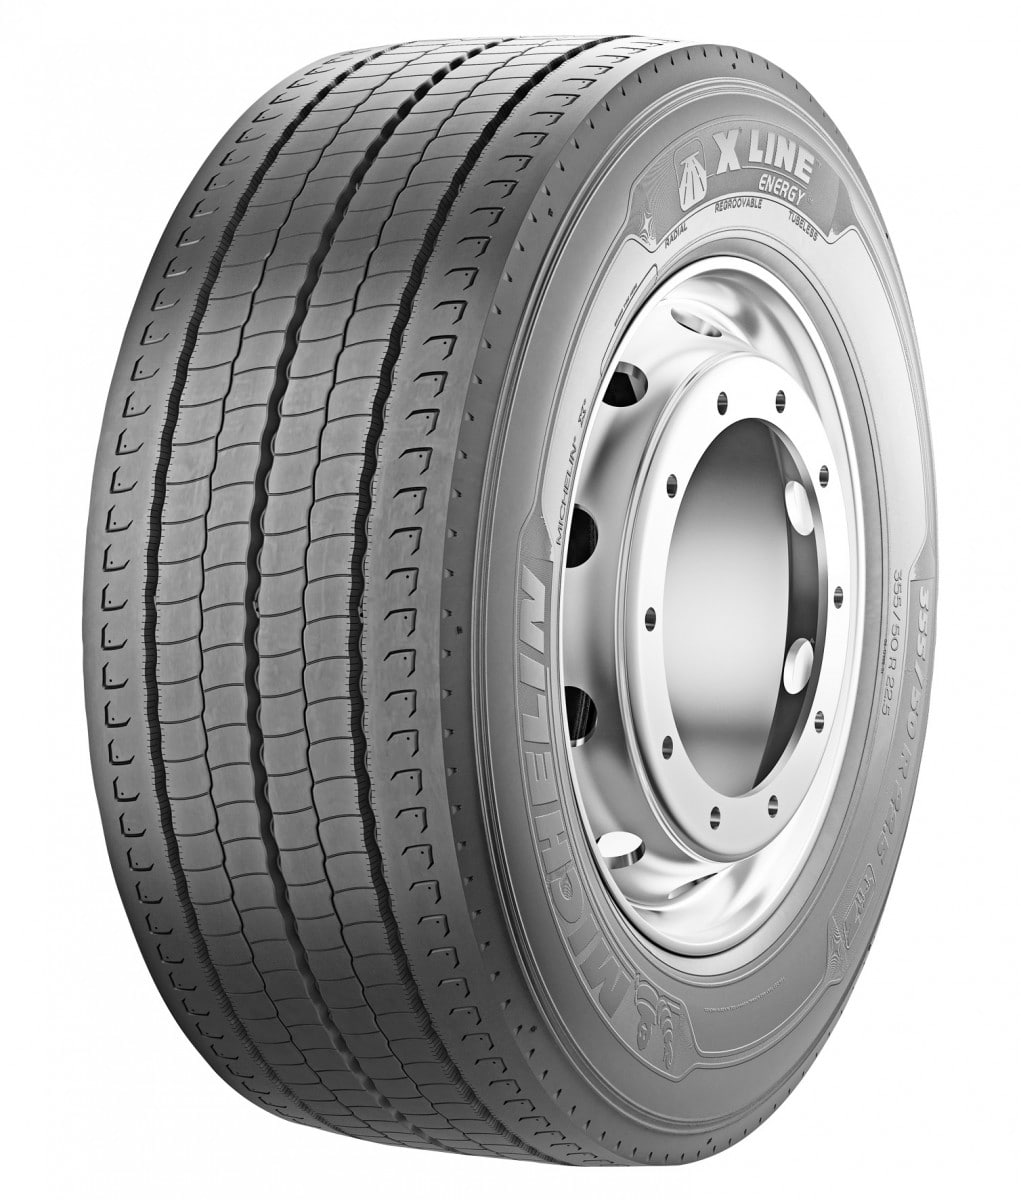 Грузовая шина Michelin X Line Energy D2 315/70R22.5